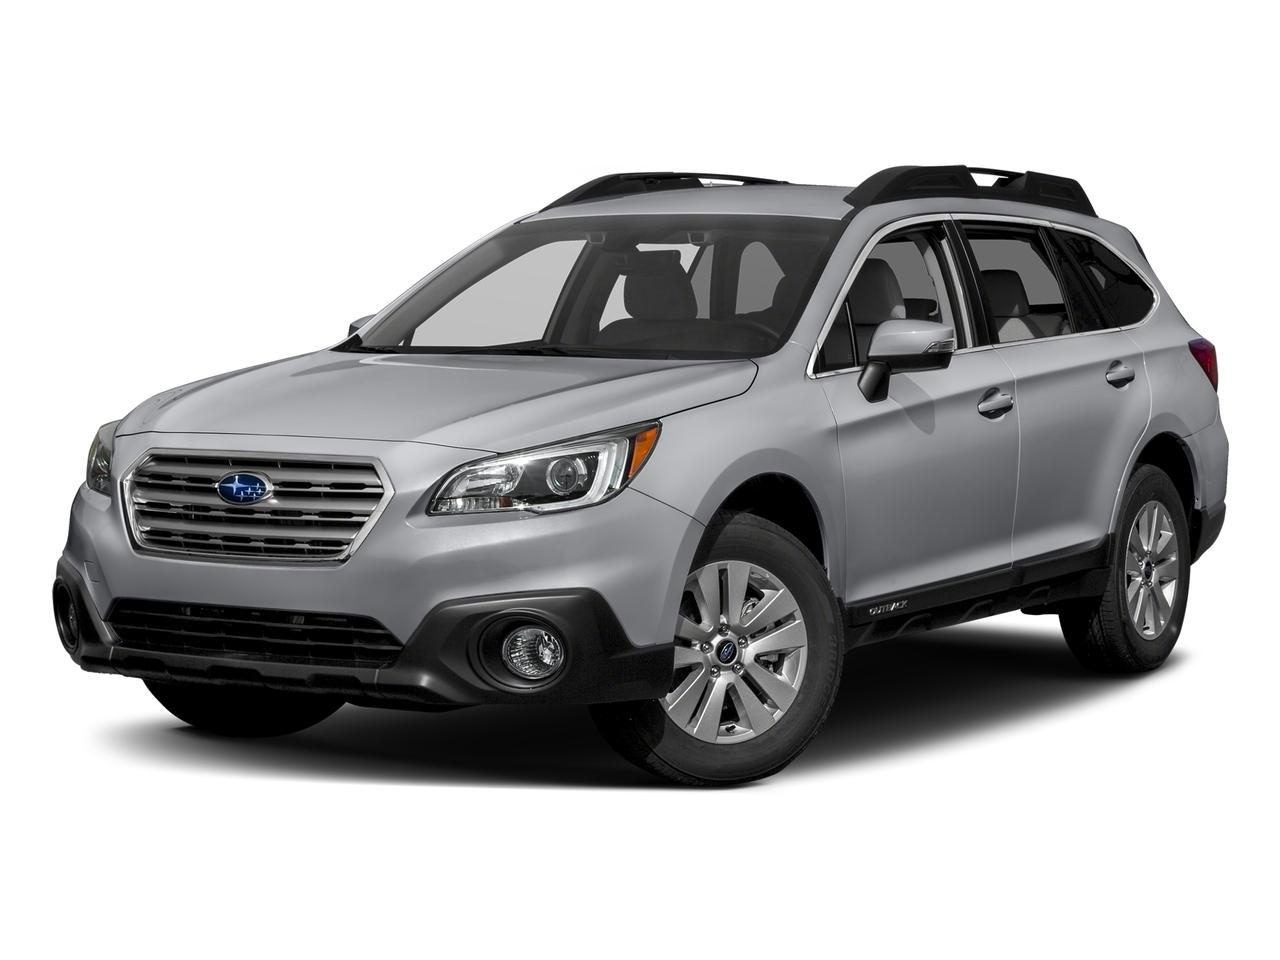 2017 Subaru Outback Vehicle Photo in Lincoln, NE 68521